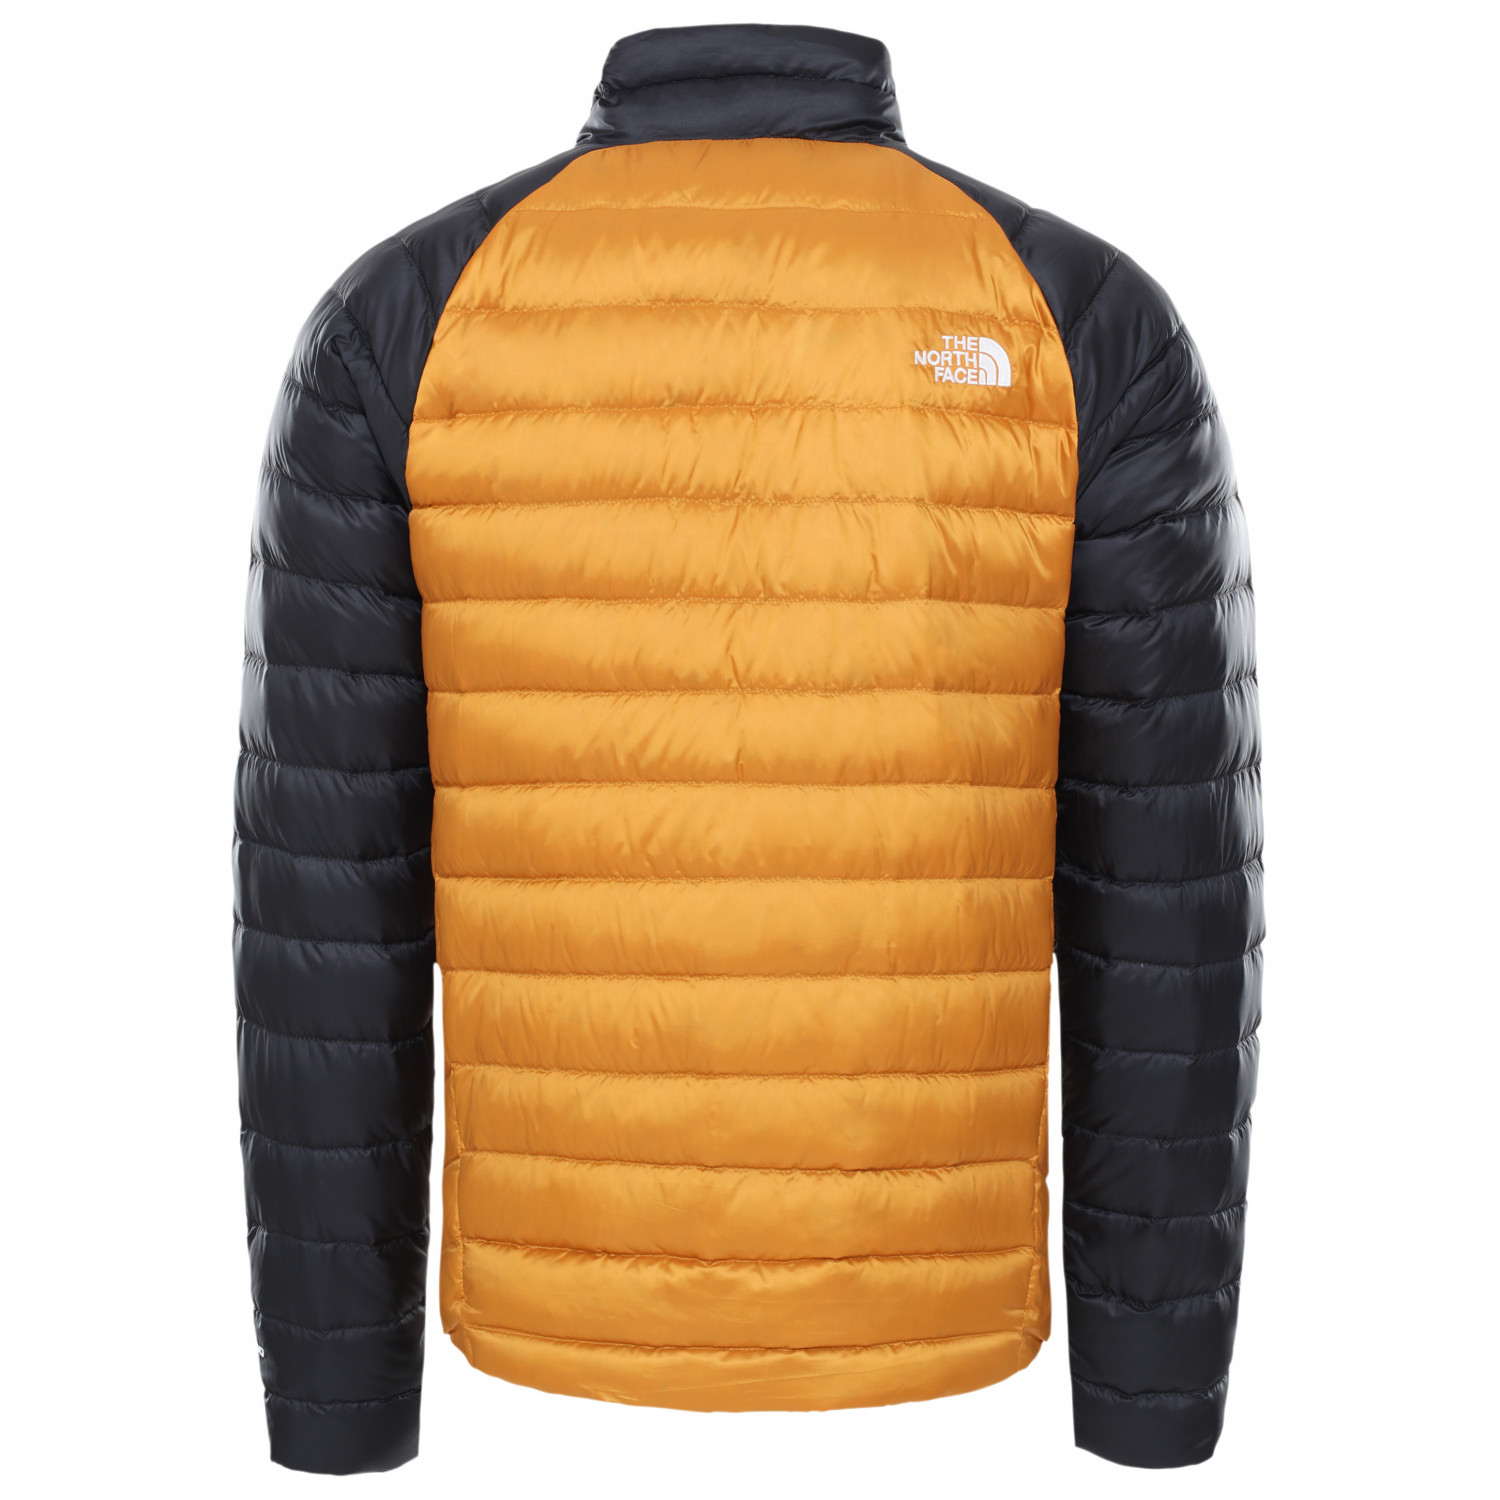 0ad620ff21f9 ... The North Face - Trevail Jacket - Down jacket ...